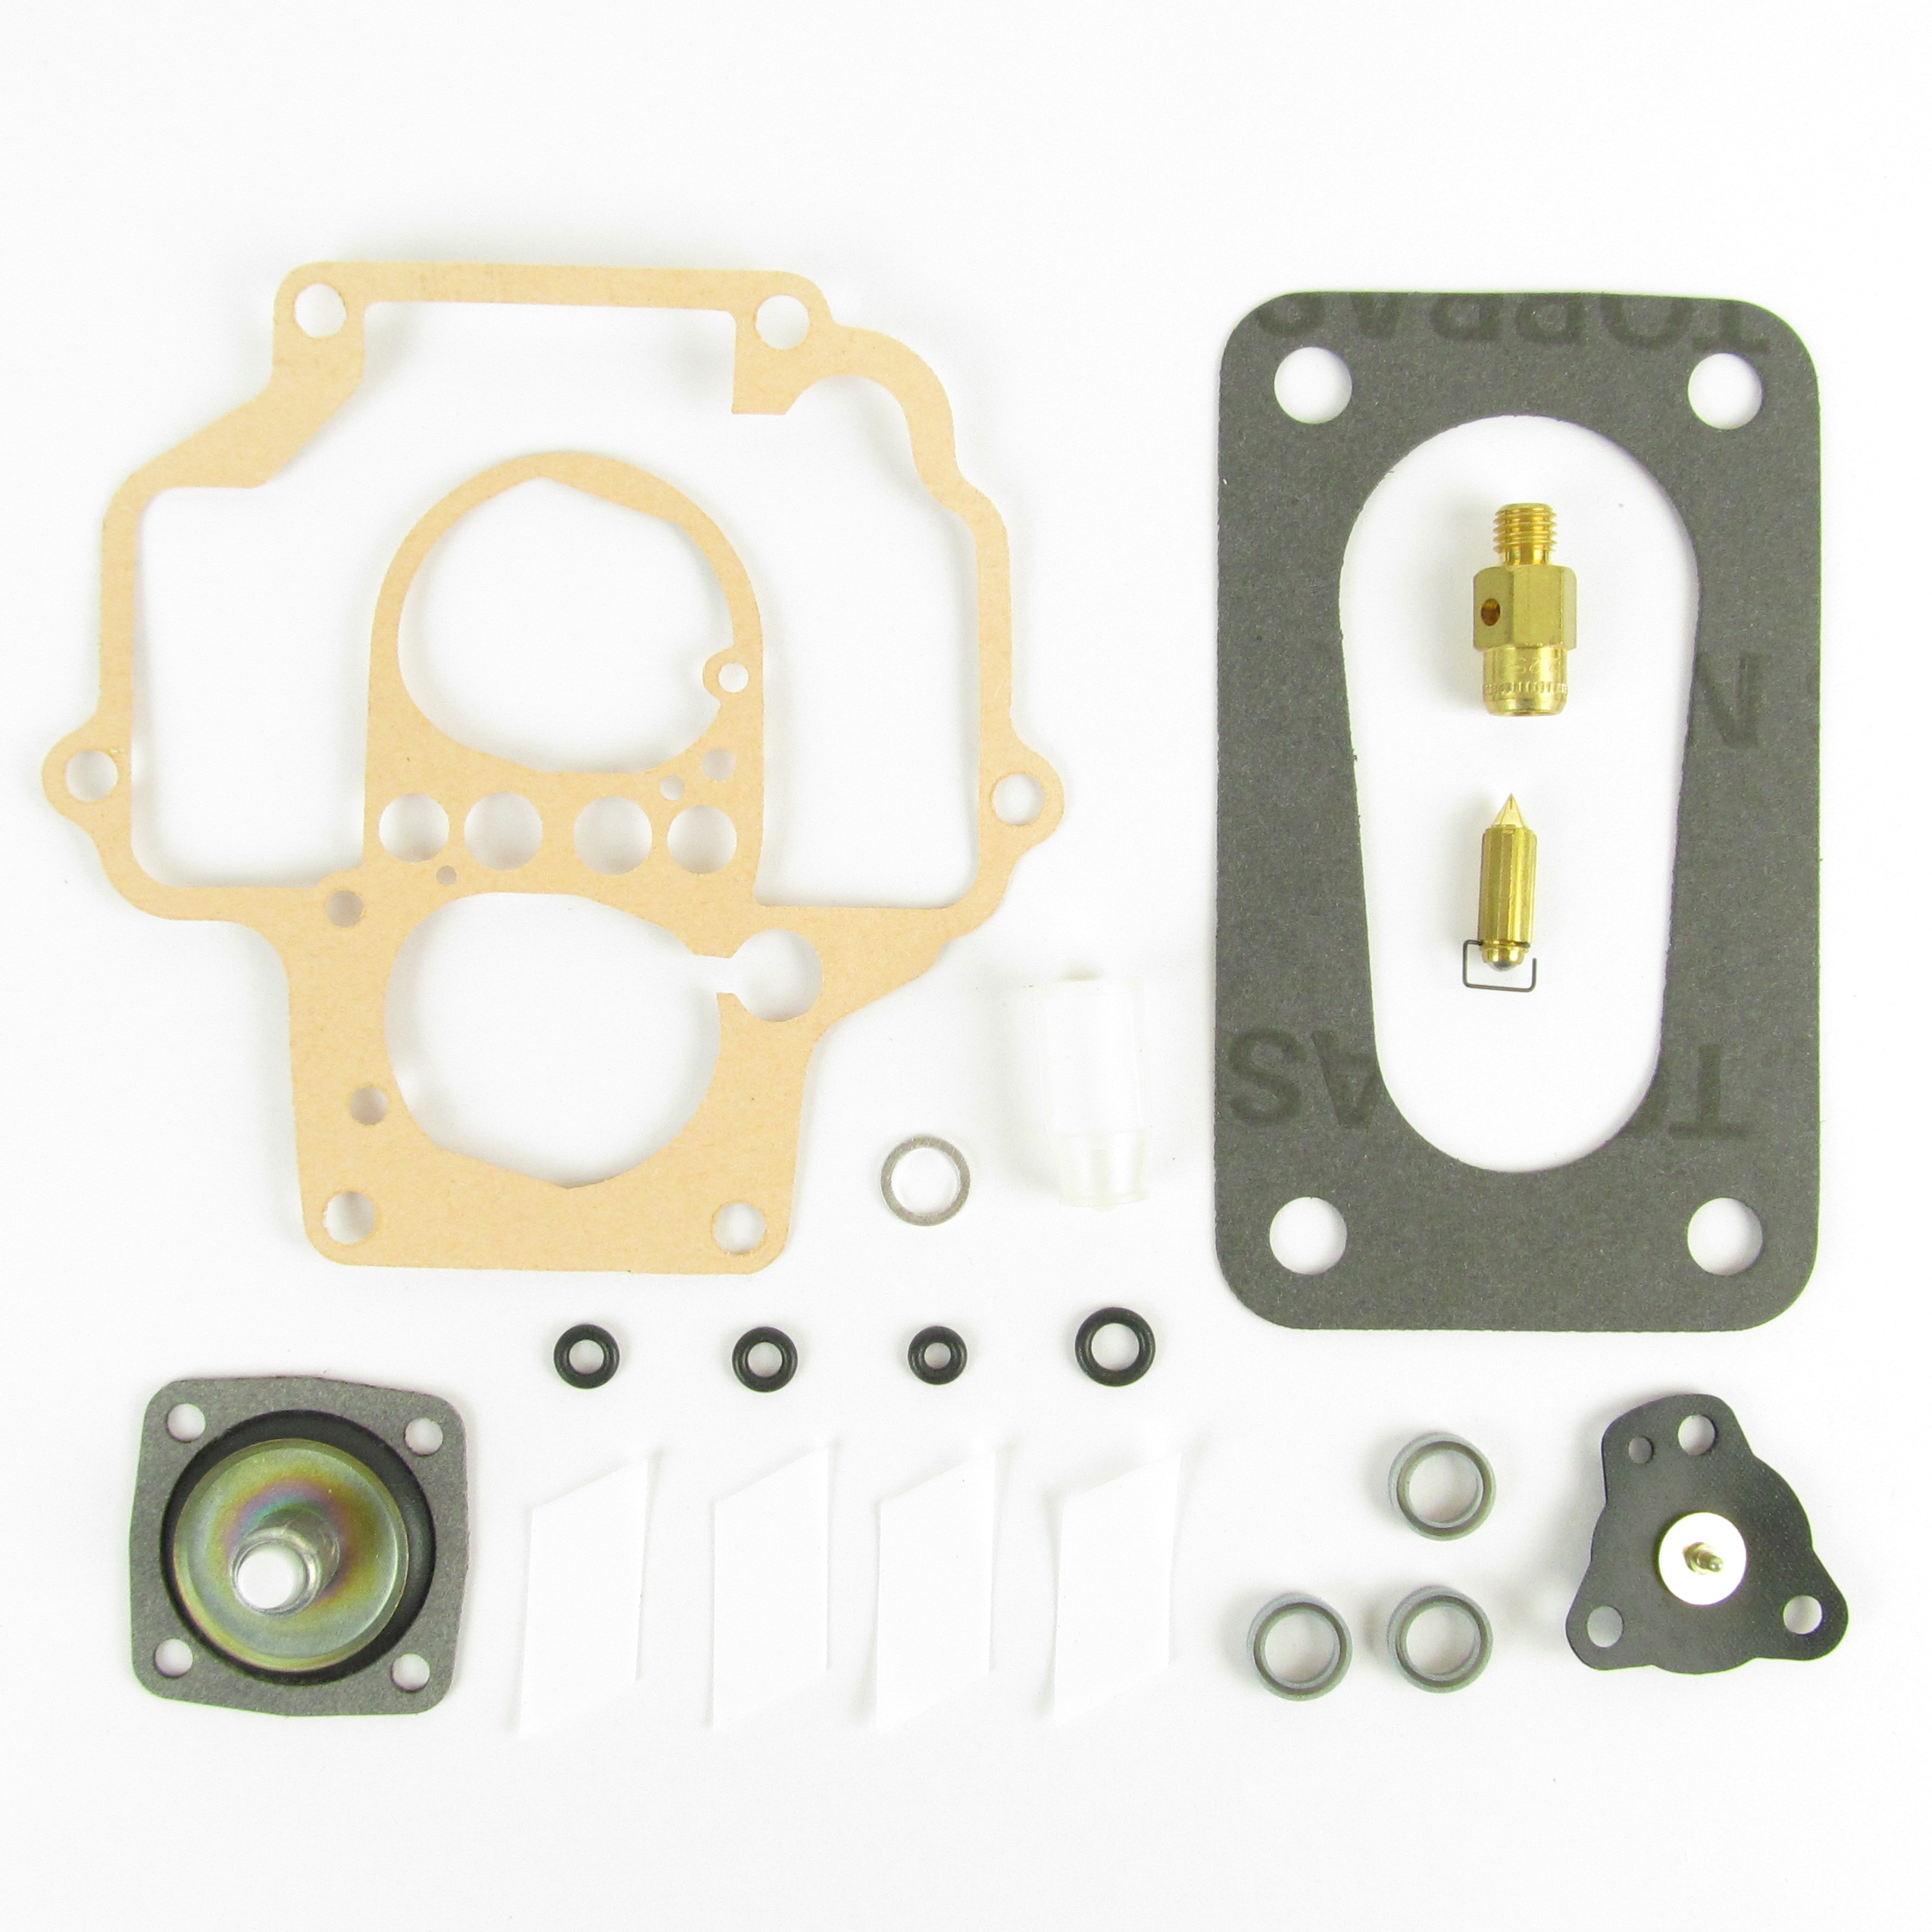 WEBER 30 / 34 DFTH CARB SERVICE / GASKET KIT CLASSIV FORD SIERRA / GRANADA / SAPPHIRE 2.0 ENGINE